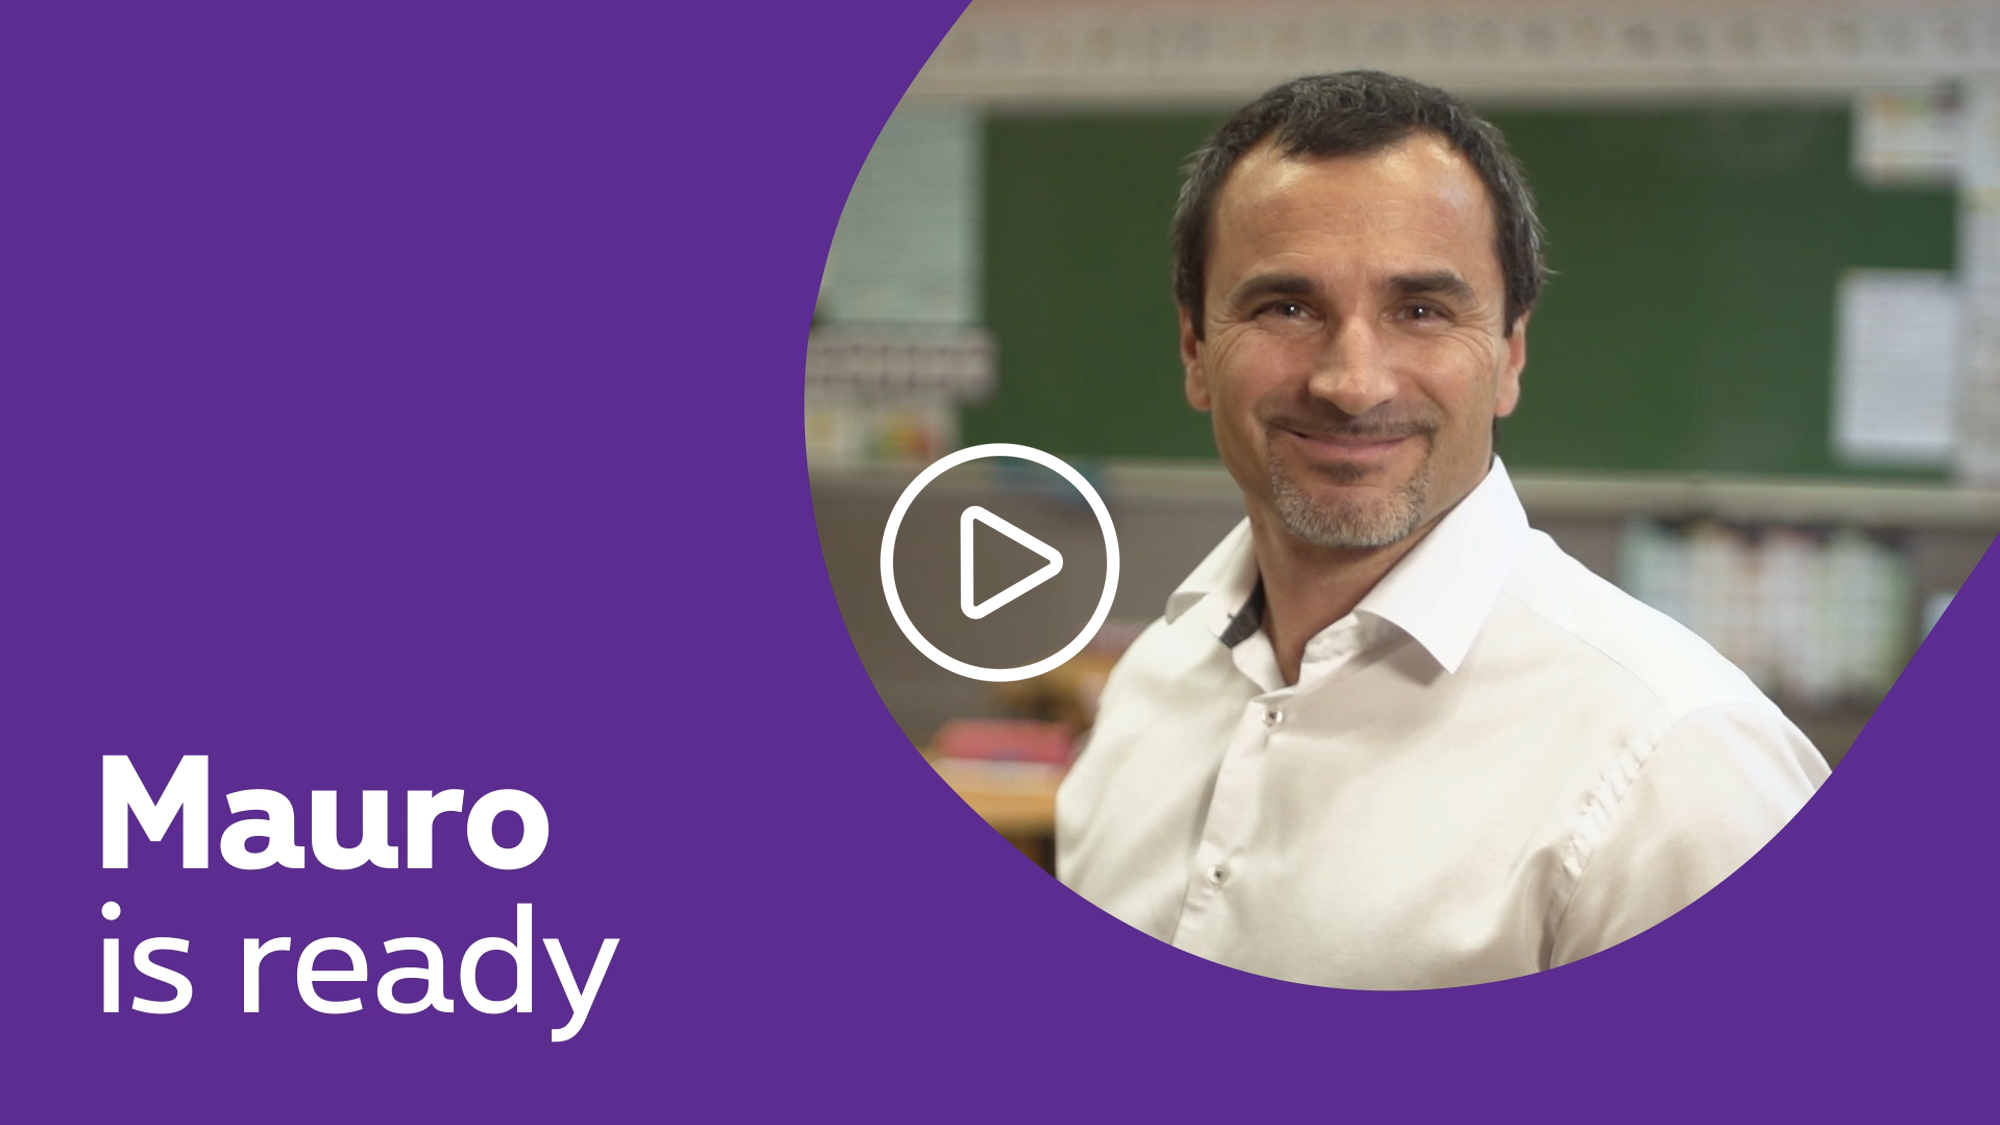 Mauro is ready for Internet Safe and Fun with Child Focus - click to see the video on YouTube